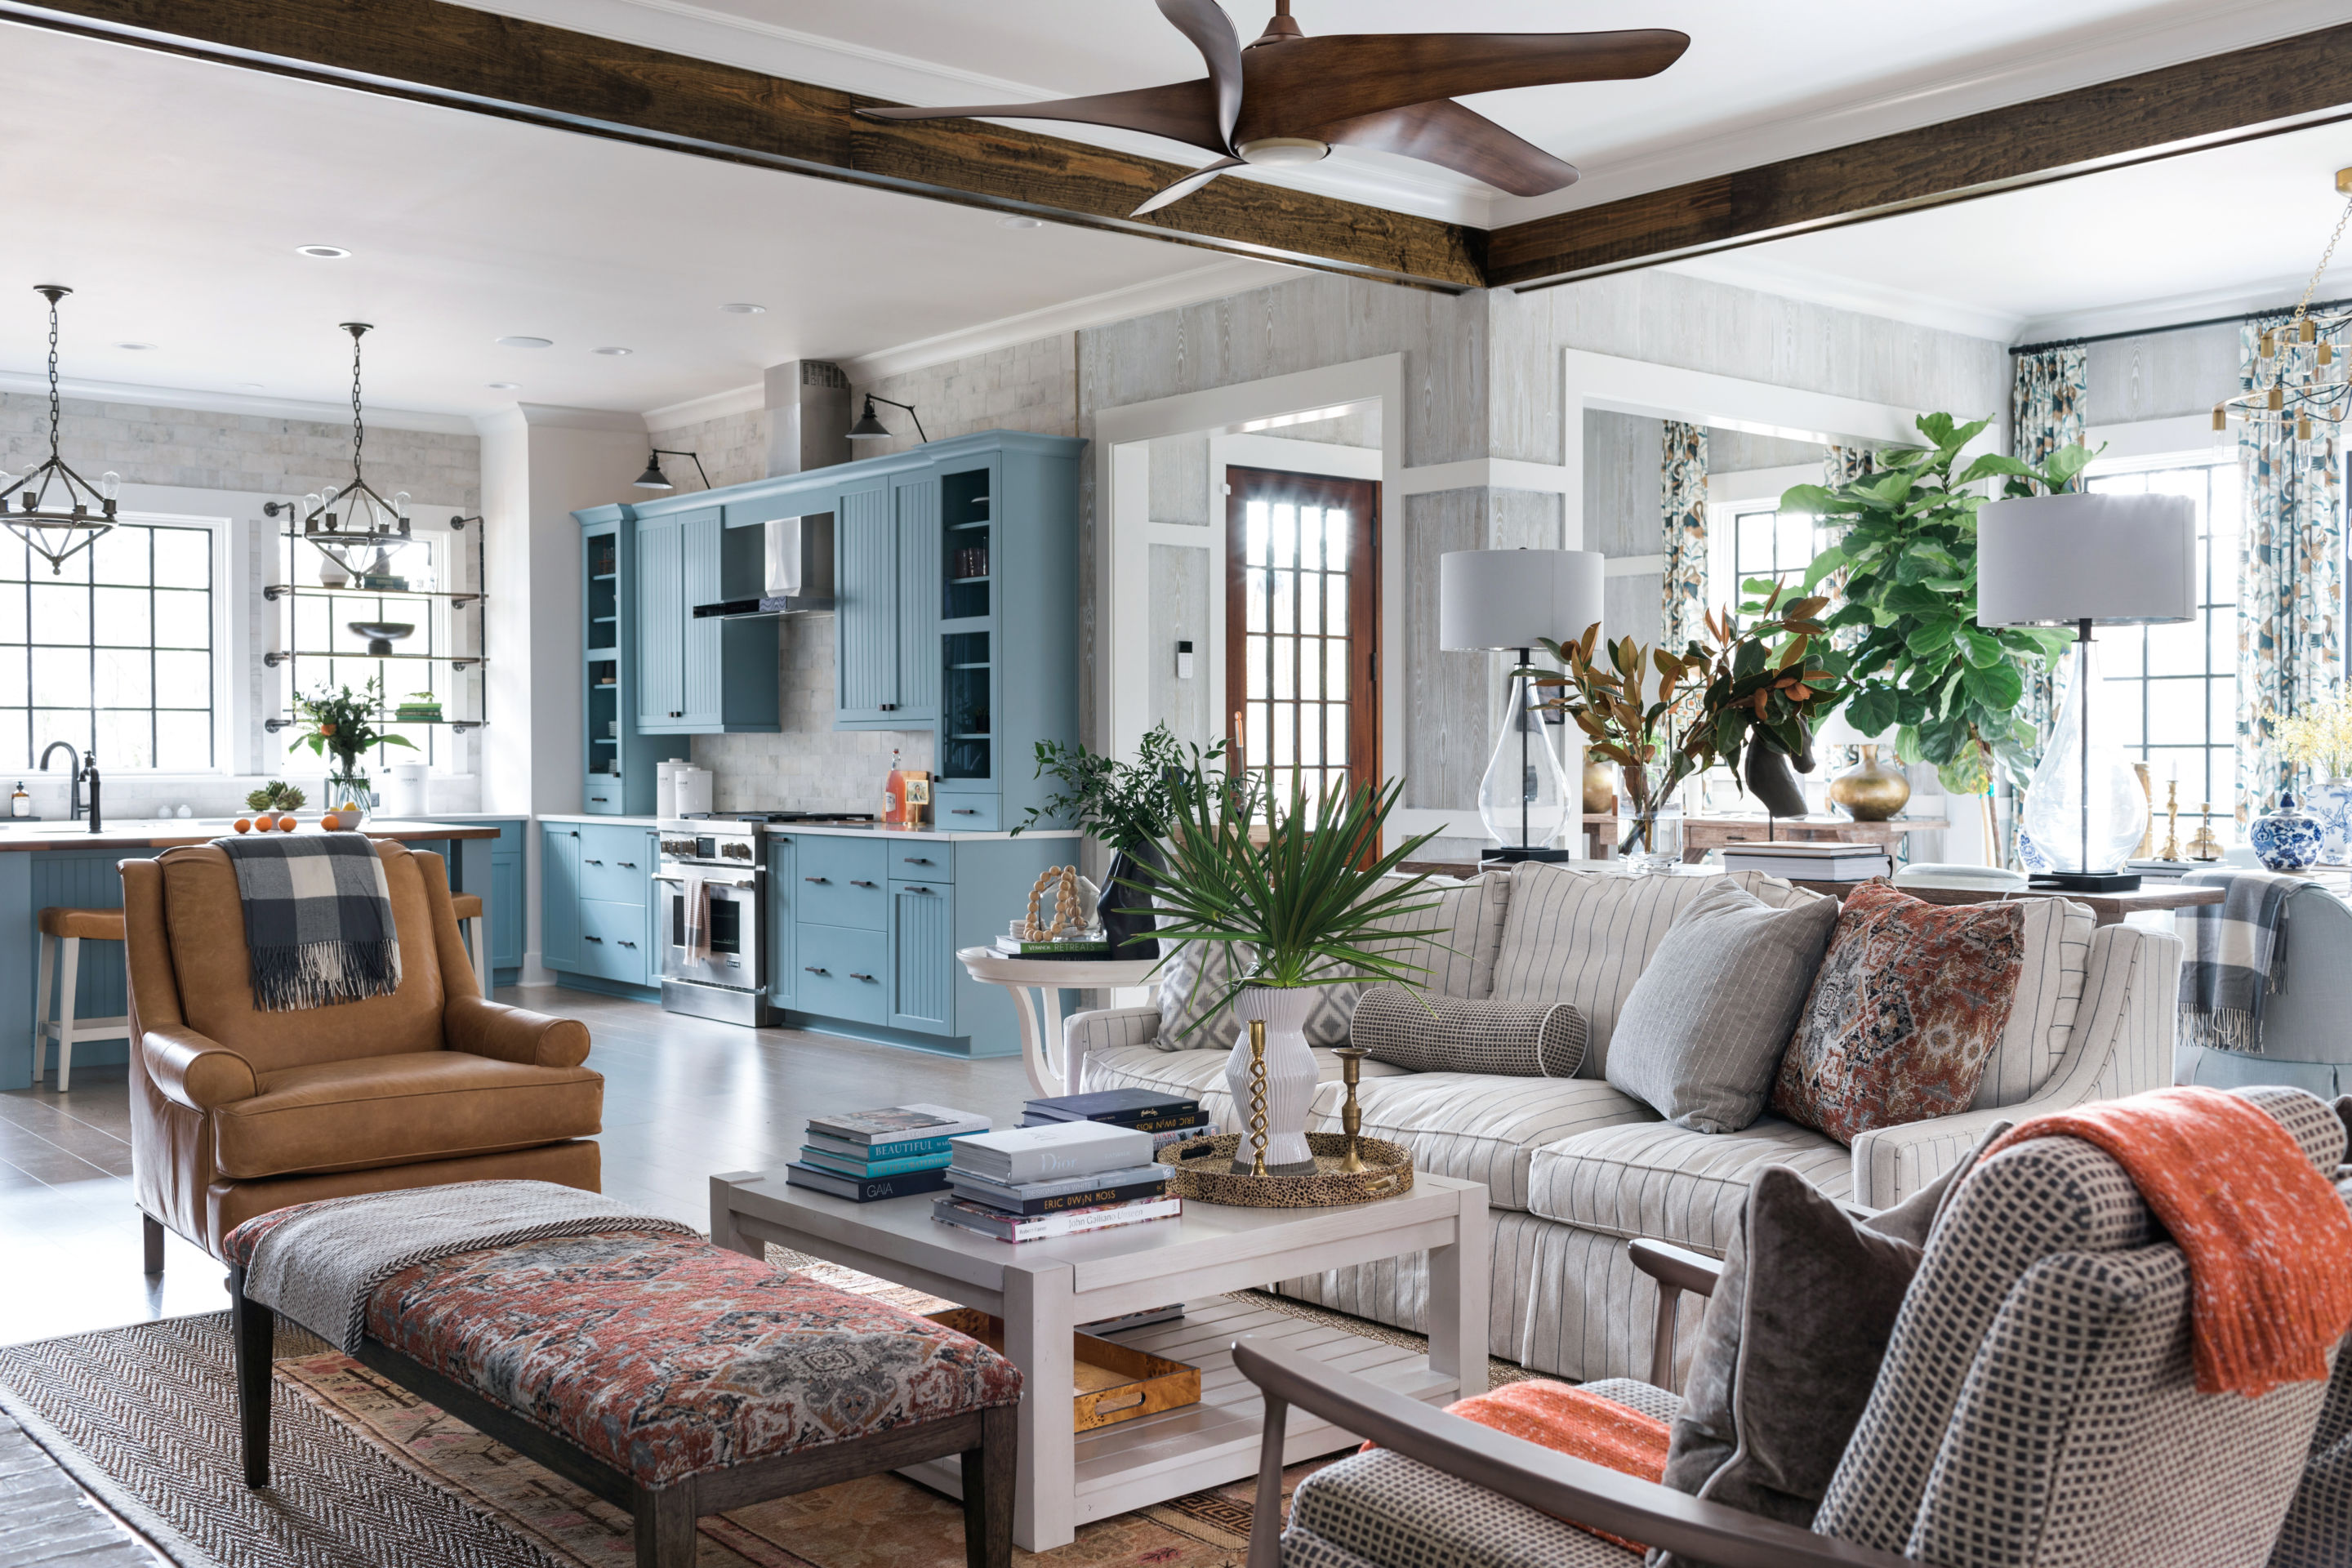 HGTV Smart Home Tour - Palmetto Bluff - Black Southern Belle